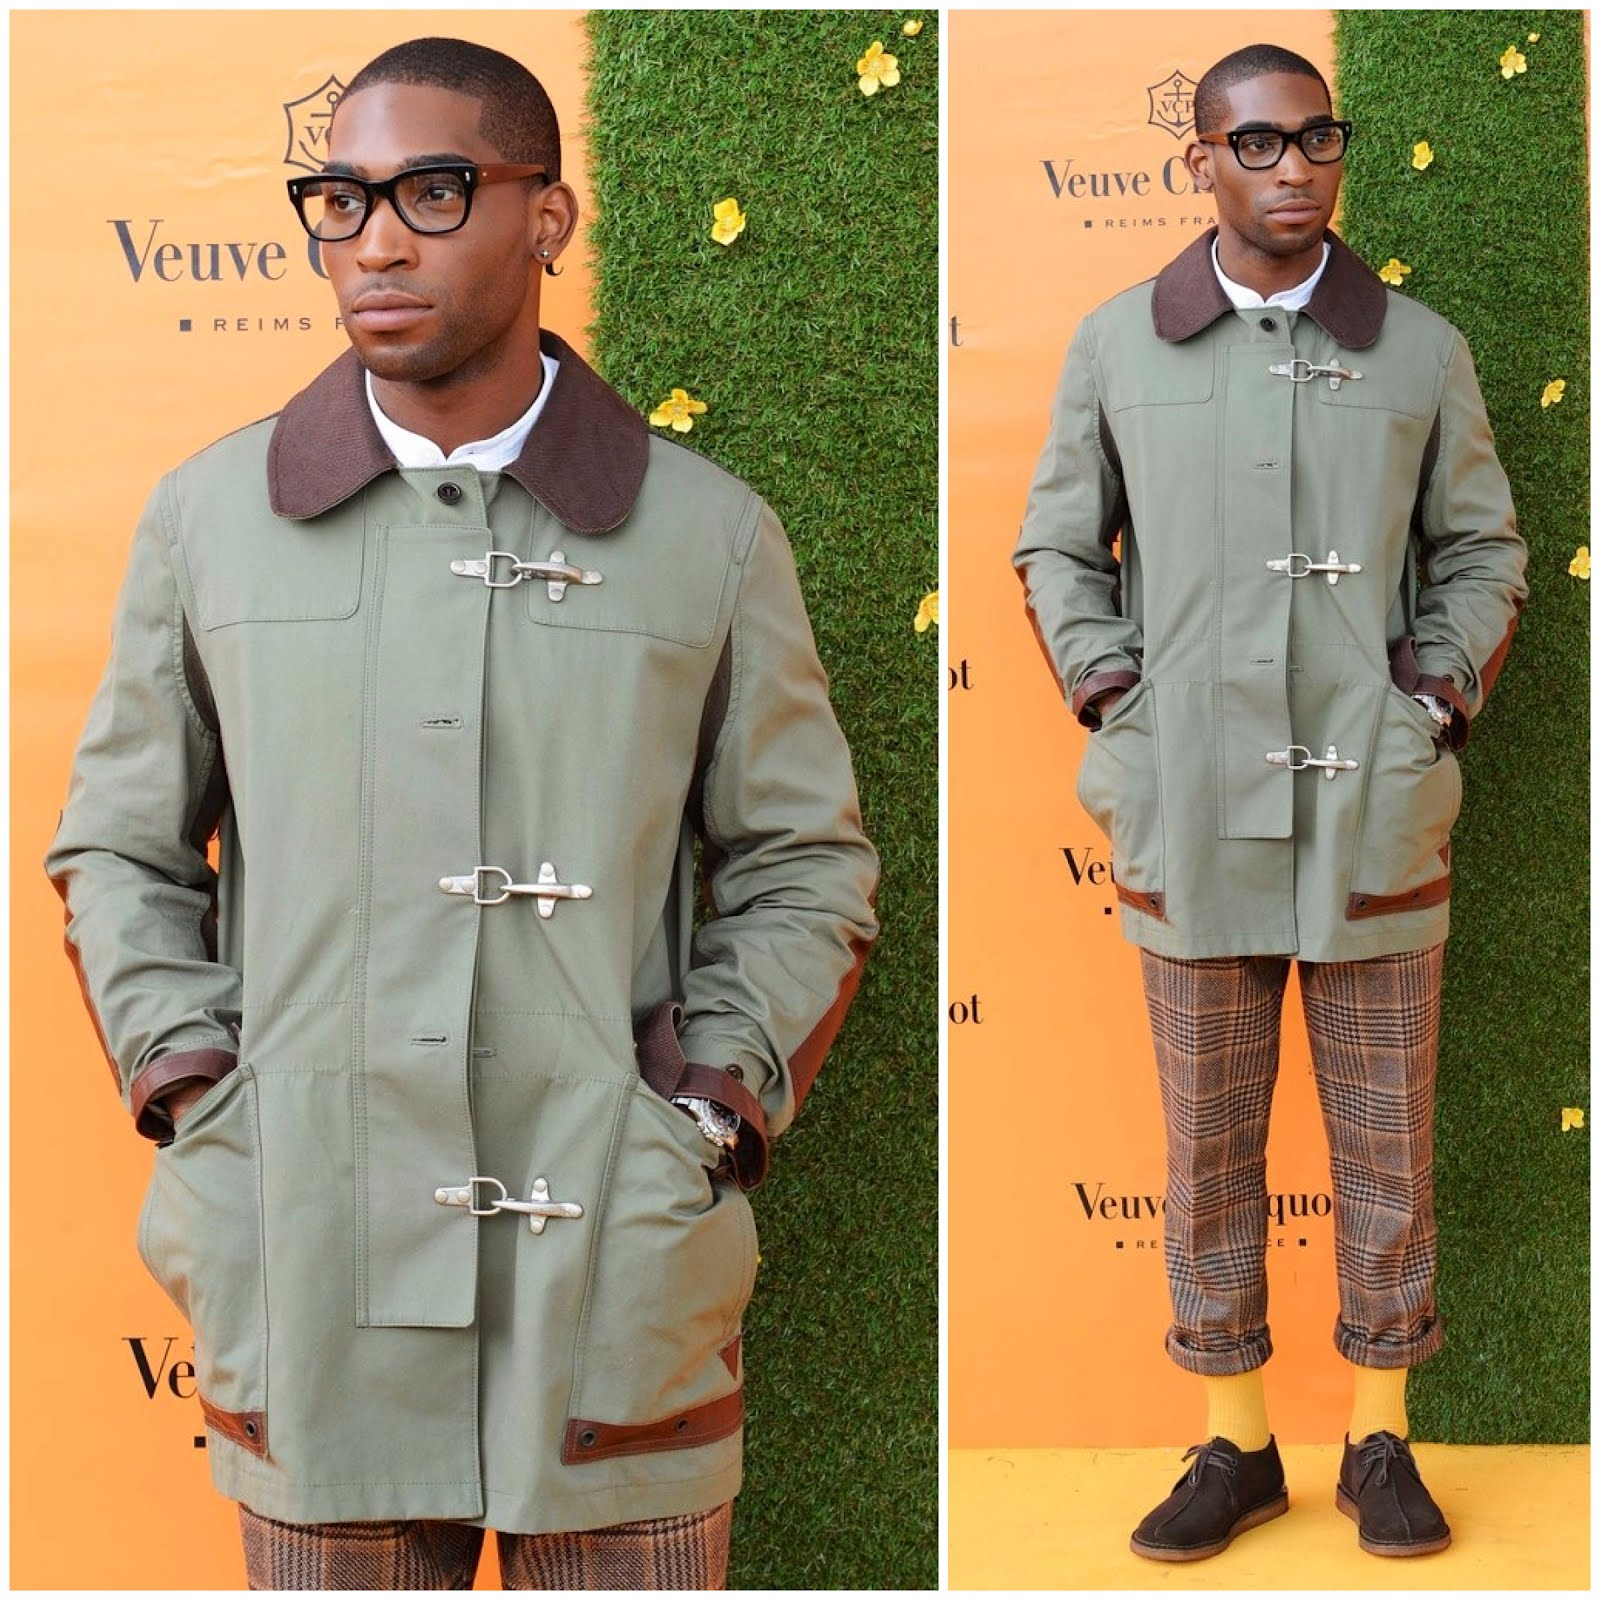 00O00 London Menswear Blog Celebrity Style Tinie Tempah attends the Veuve Clicquot Gold Cup Final at Cowdray Park Polo Club on July 15 2012 in Midhurst England in Junya Watanabe available from Farfetch